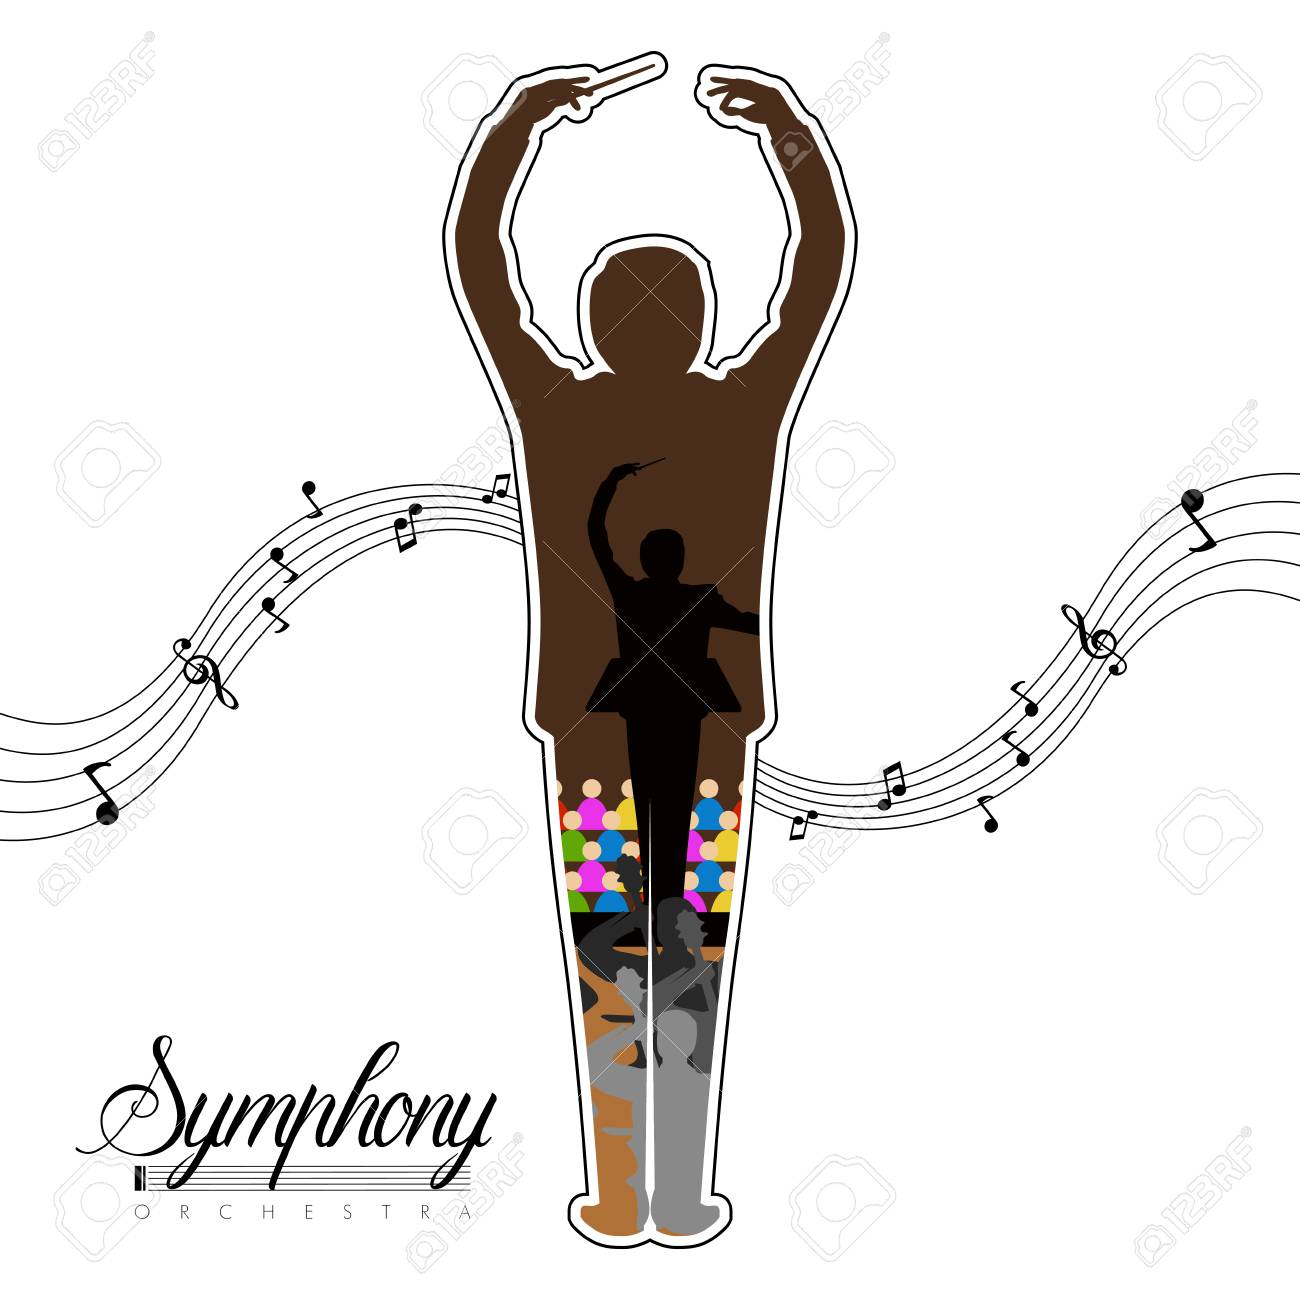 Isolated conductor icon with musical notes and orchestra inside. Vector illustration design - 106410641